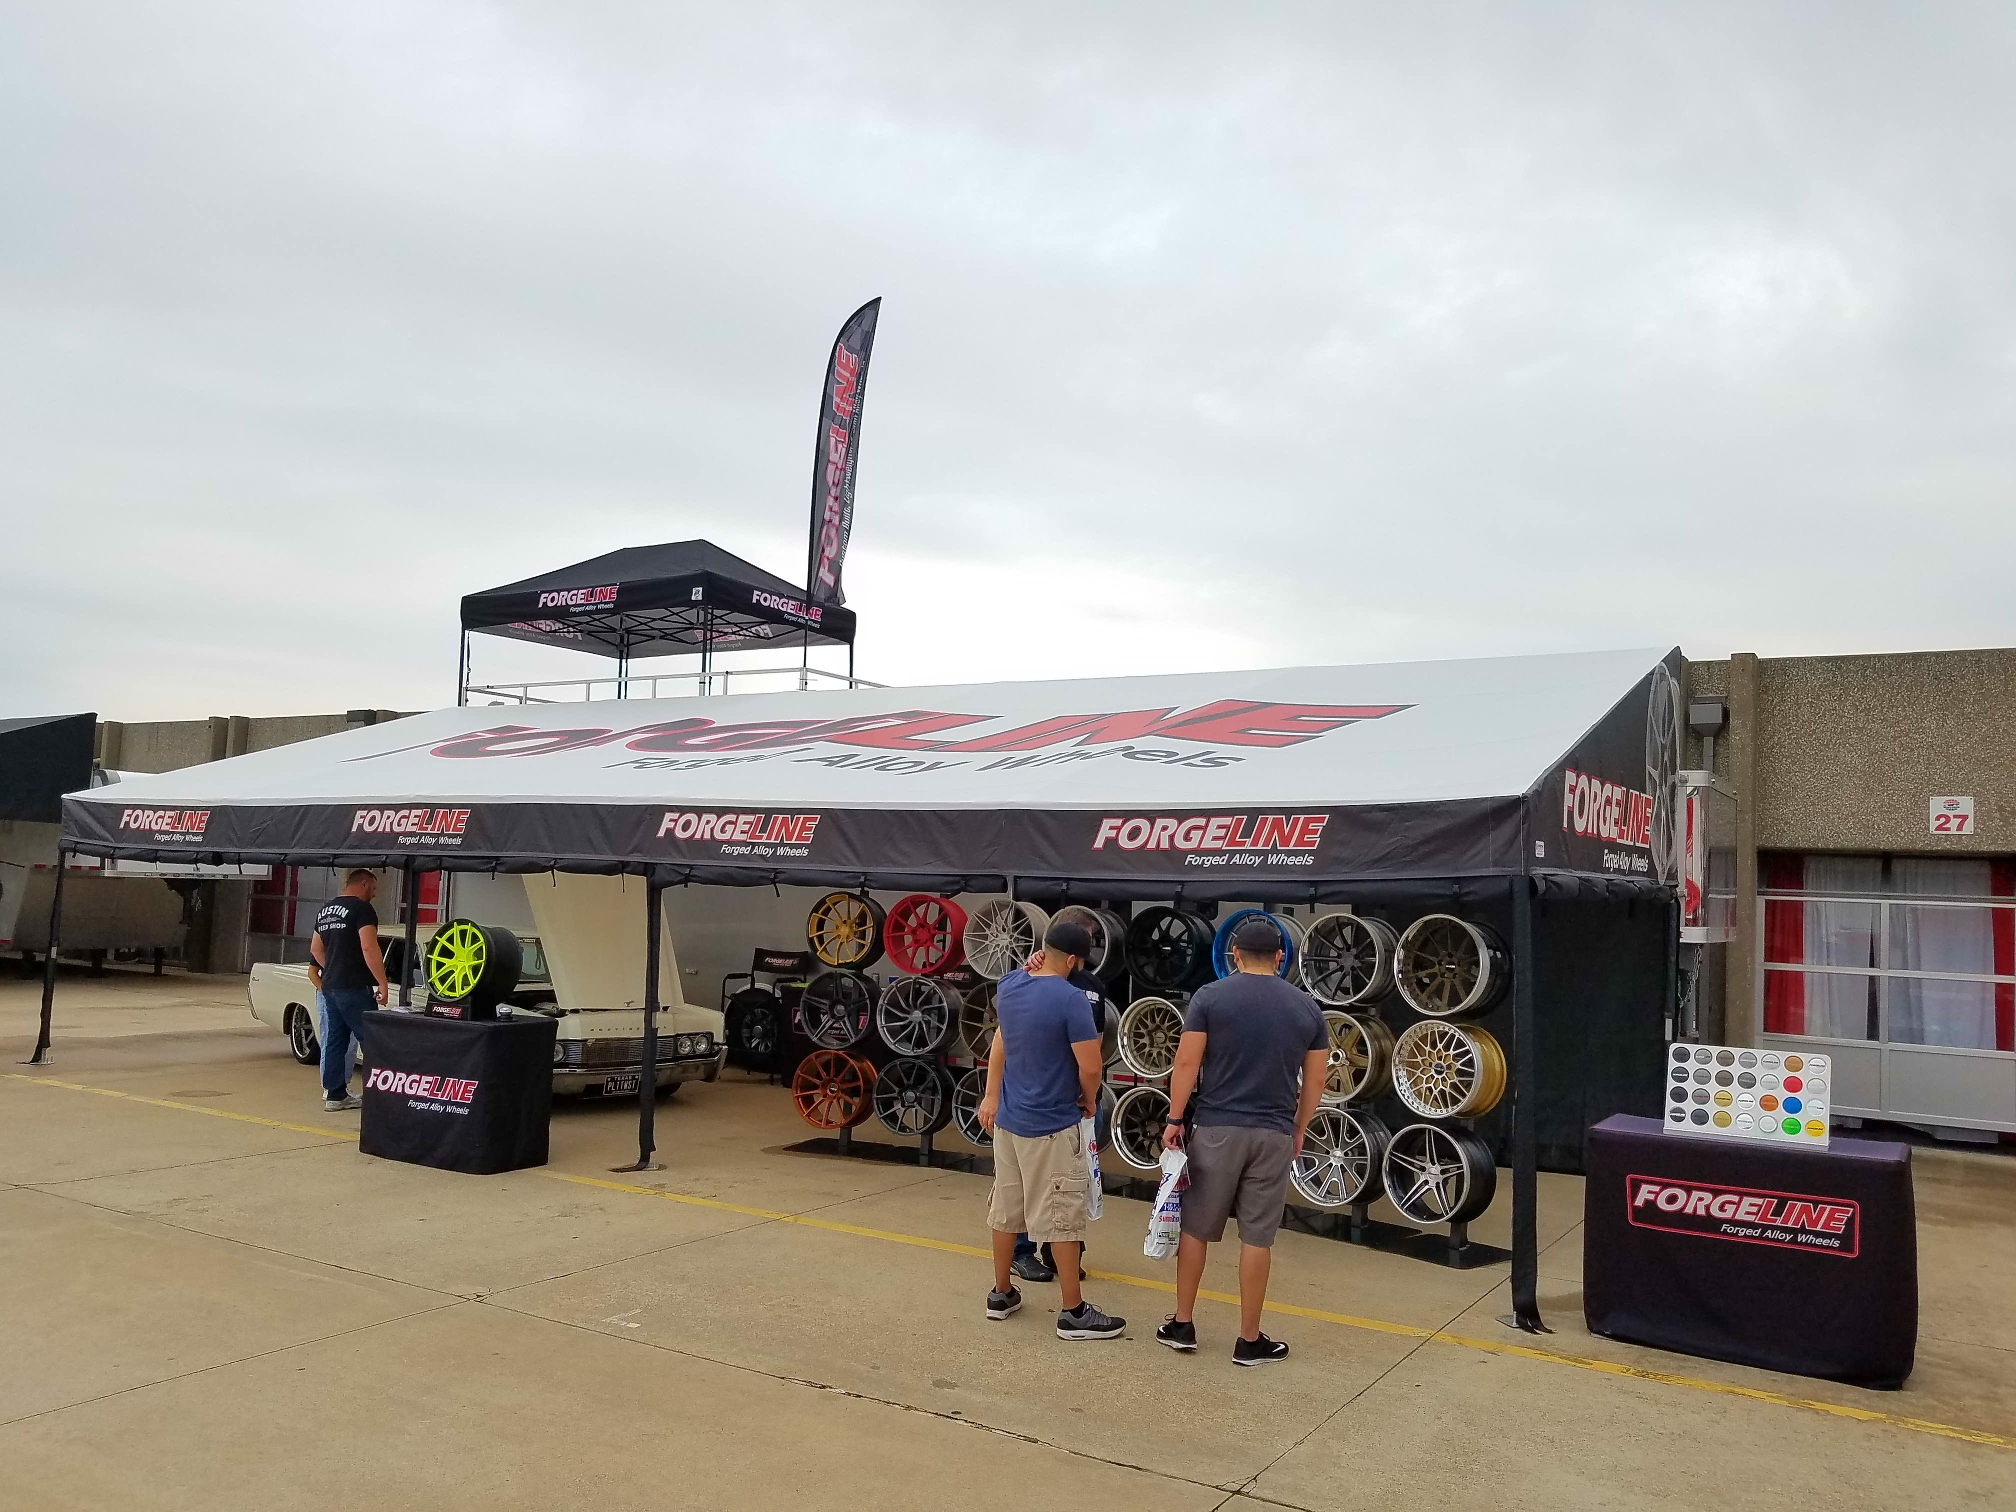 The Forgeline trailer at the 2017 Goodguys Lonestar Nationals, in Ft Worth, TX